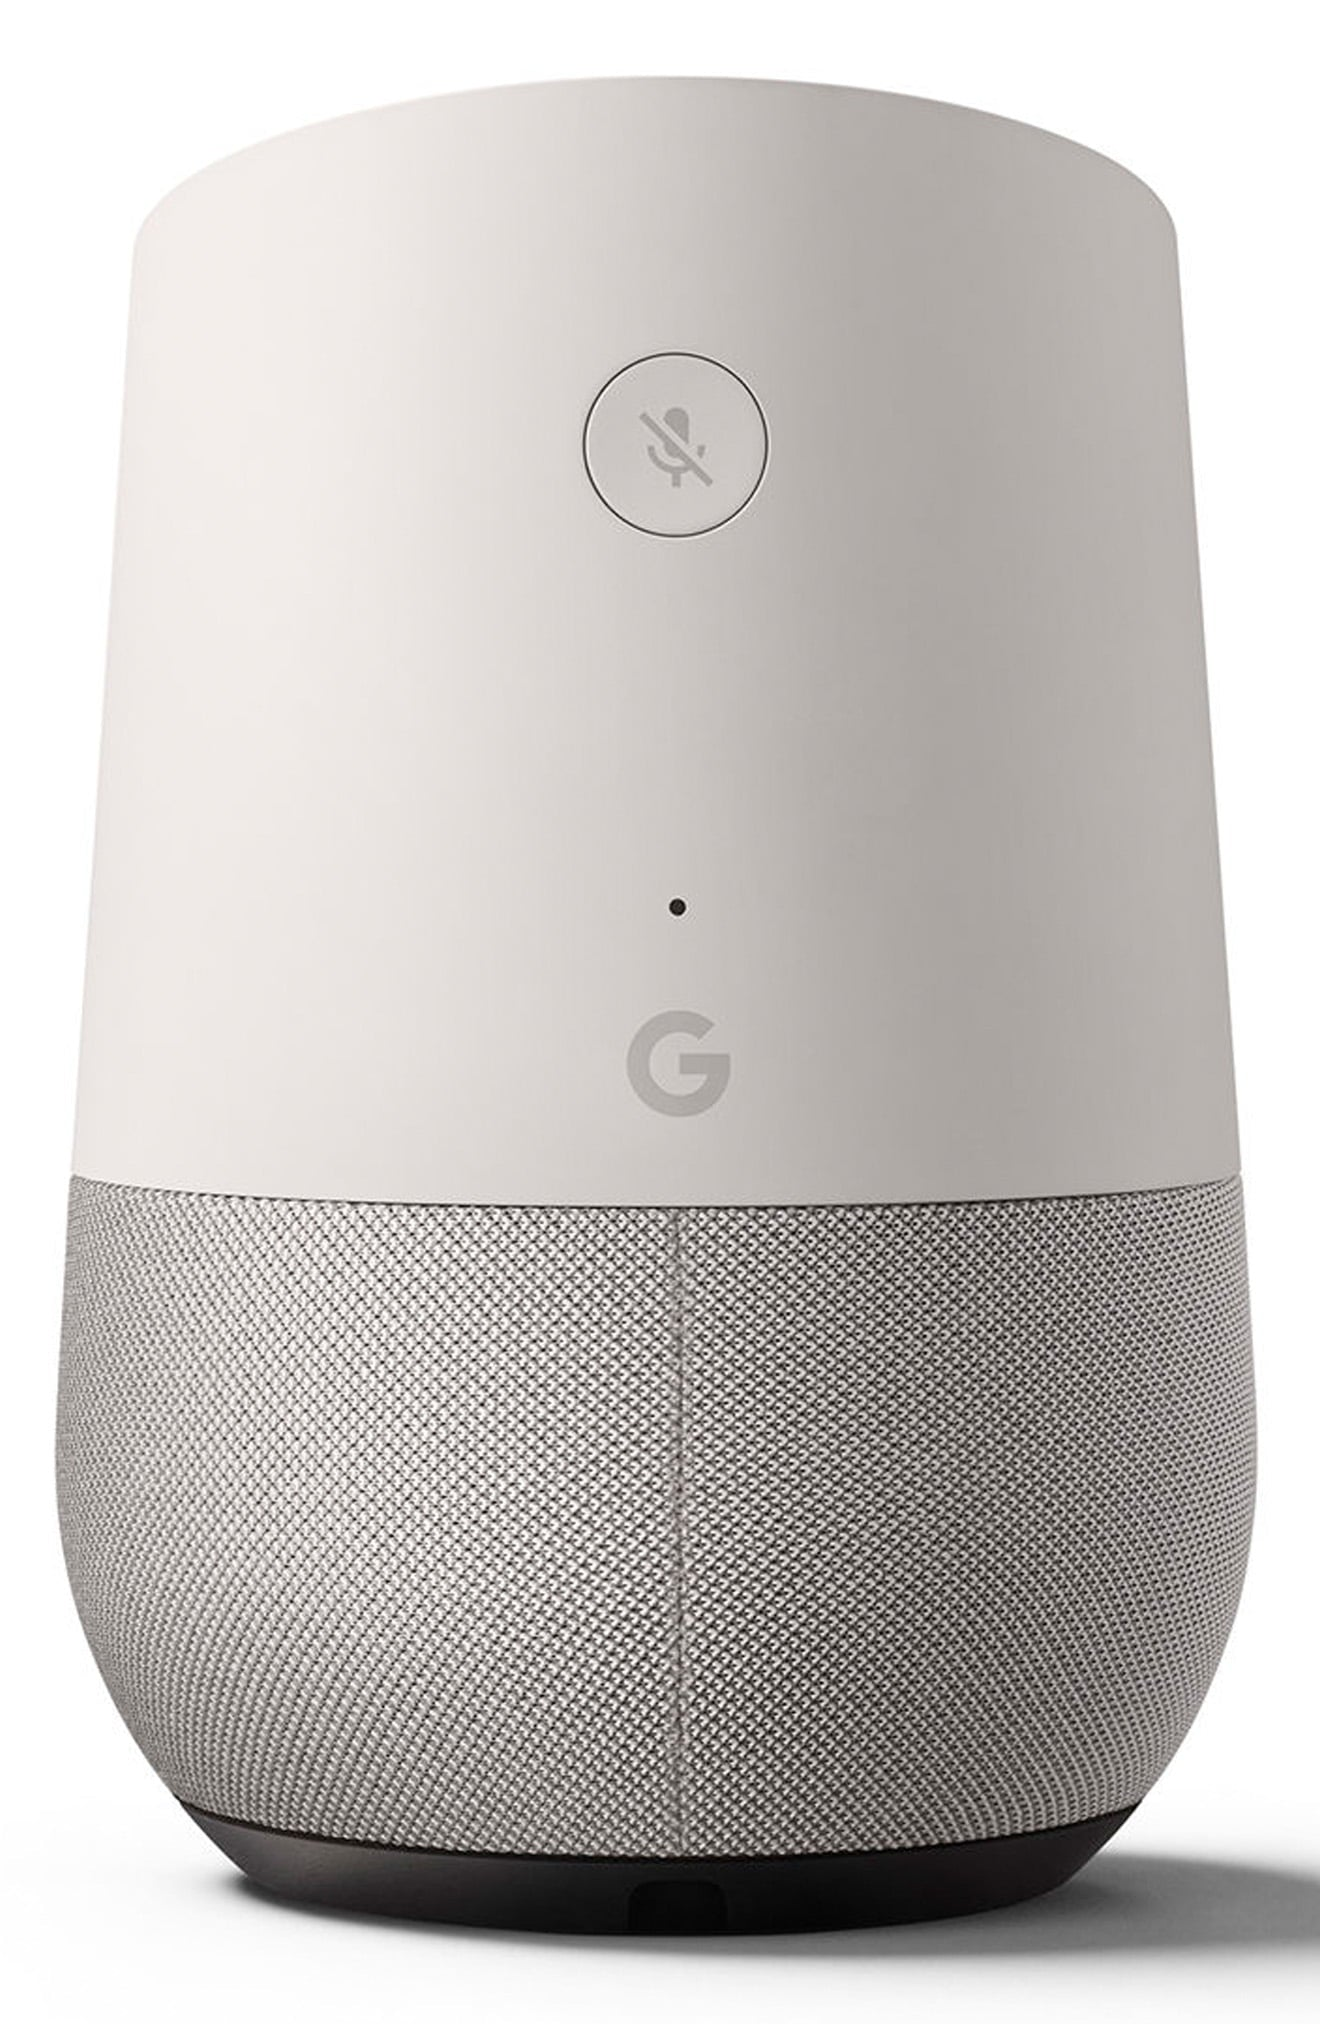 Home - Smart Speaker with Google Assistant - White/Slate